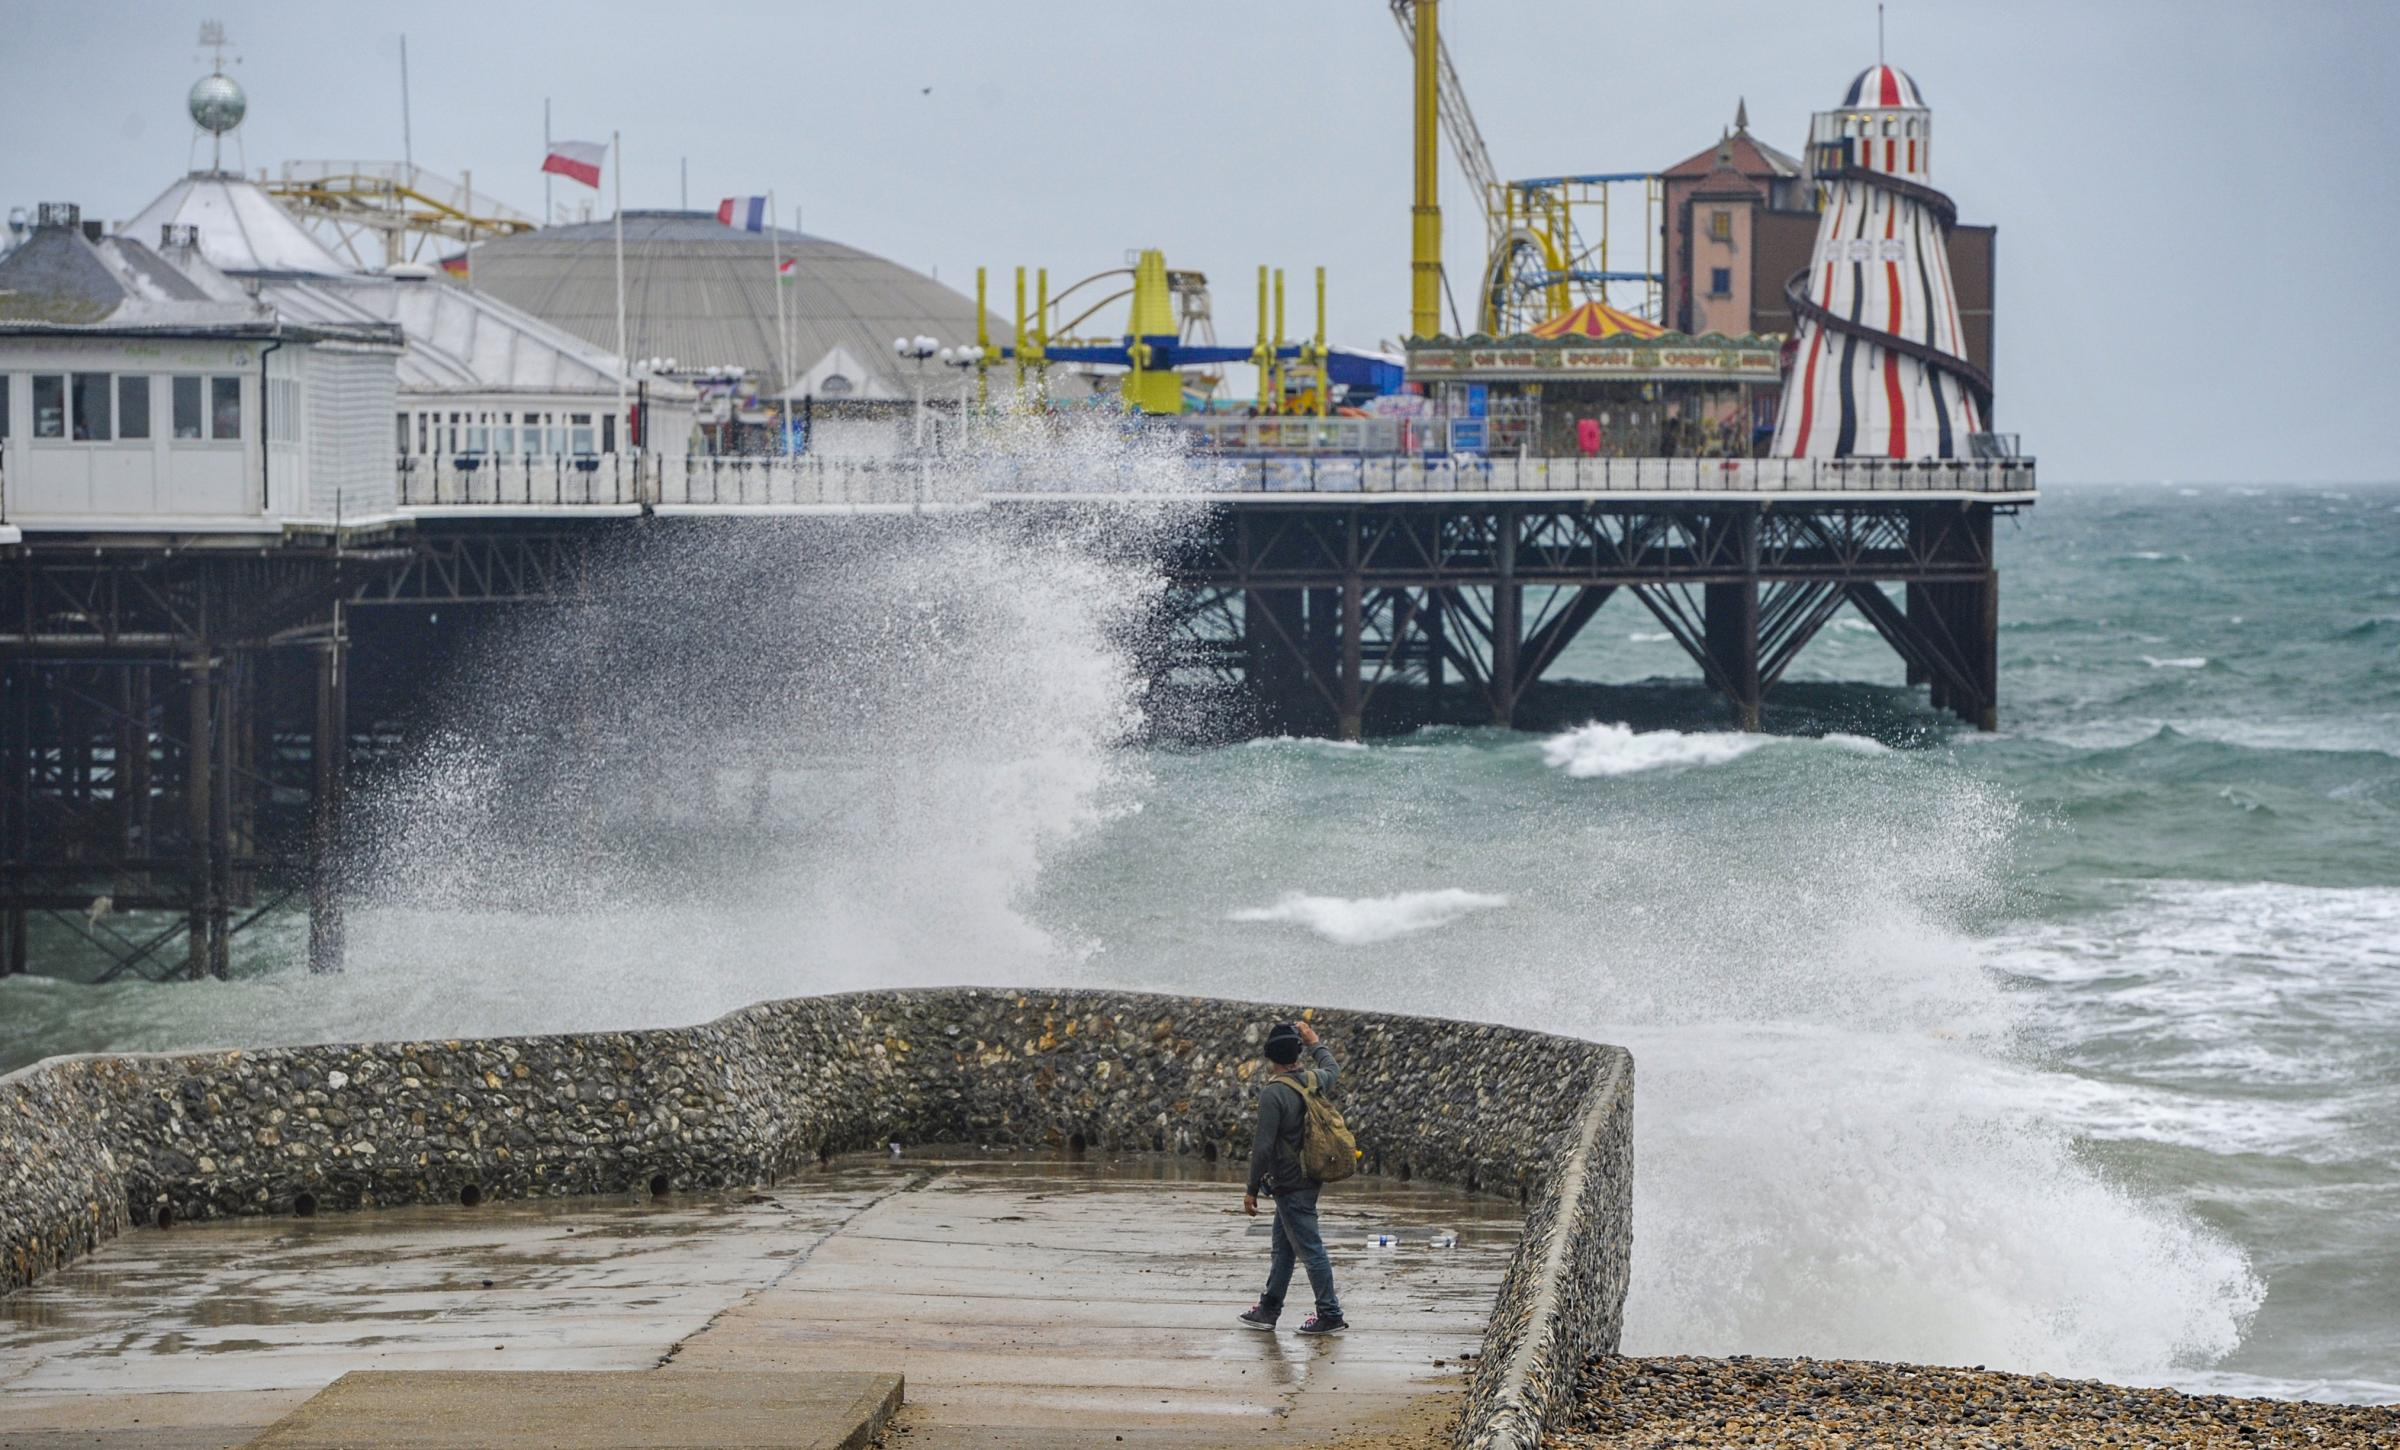 Brighton UK 18th September 2018 - Waves crash on to Brighton seafront as Storm Helene starts to hit Britain with winds of up to 70 mph expected in some parts of the UK over the next few days..